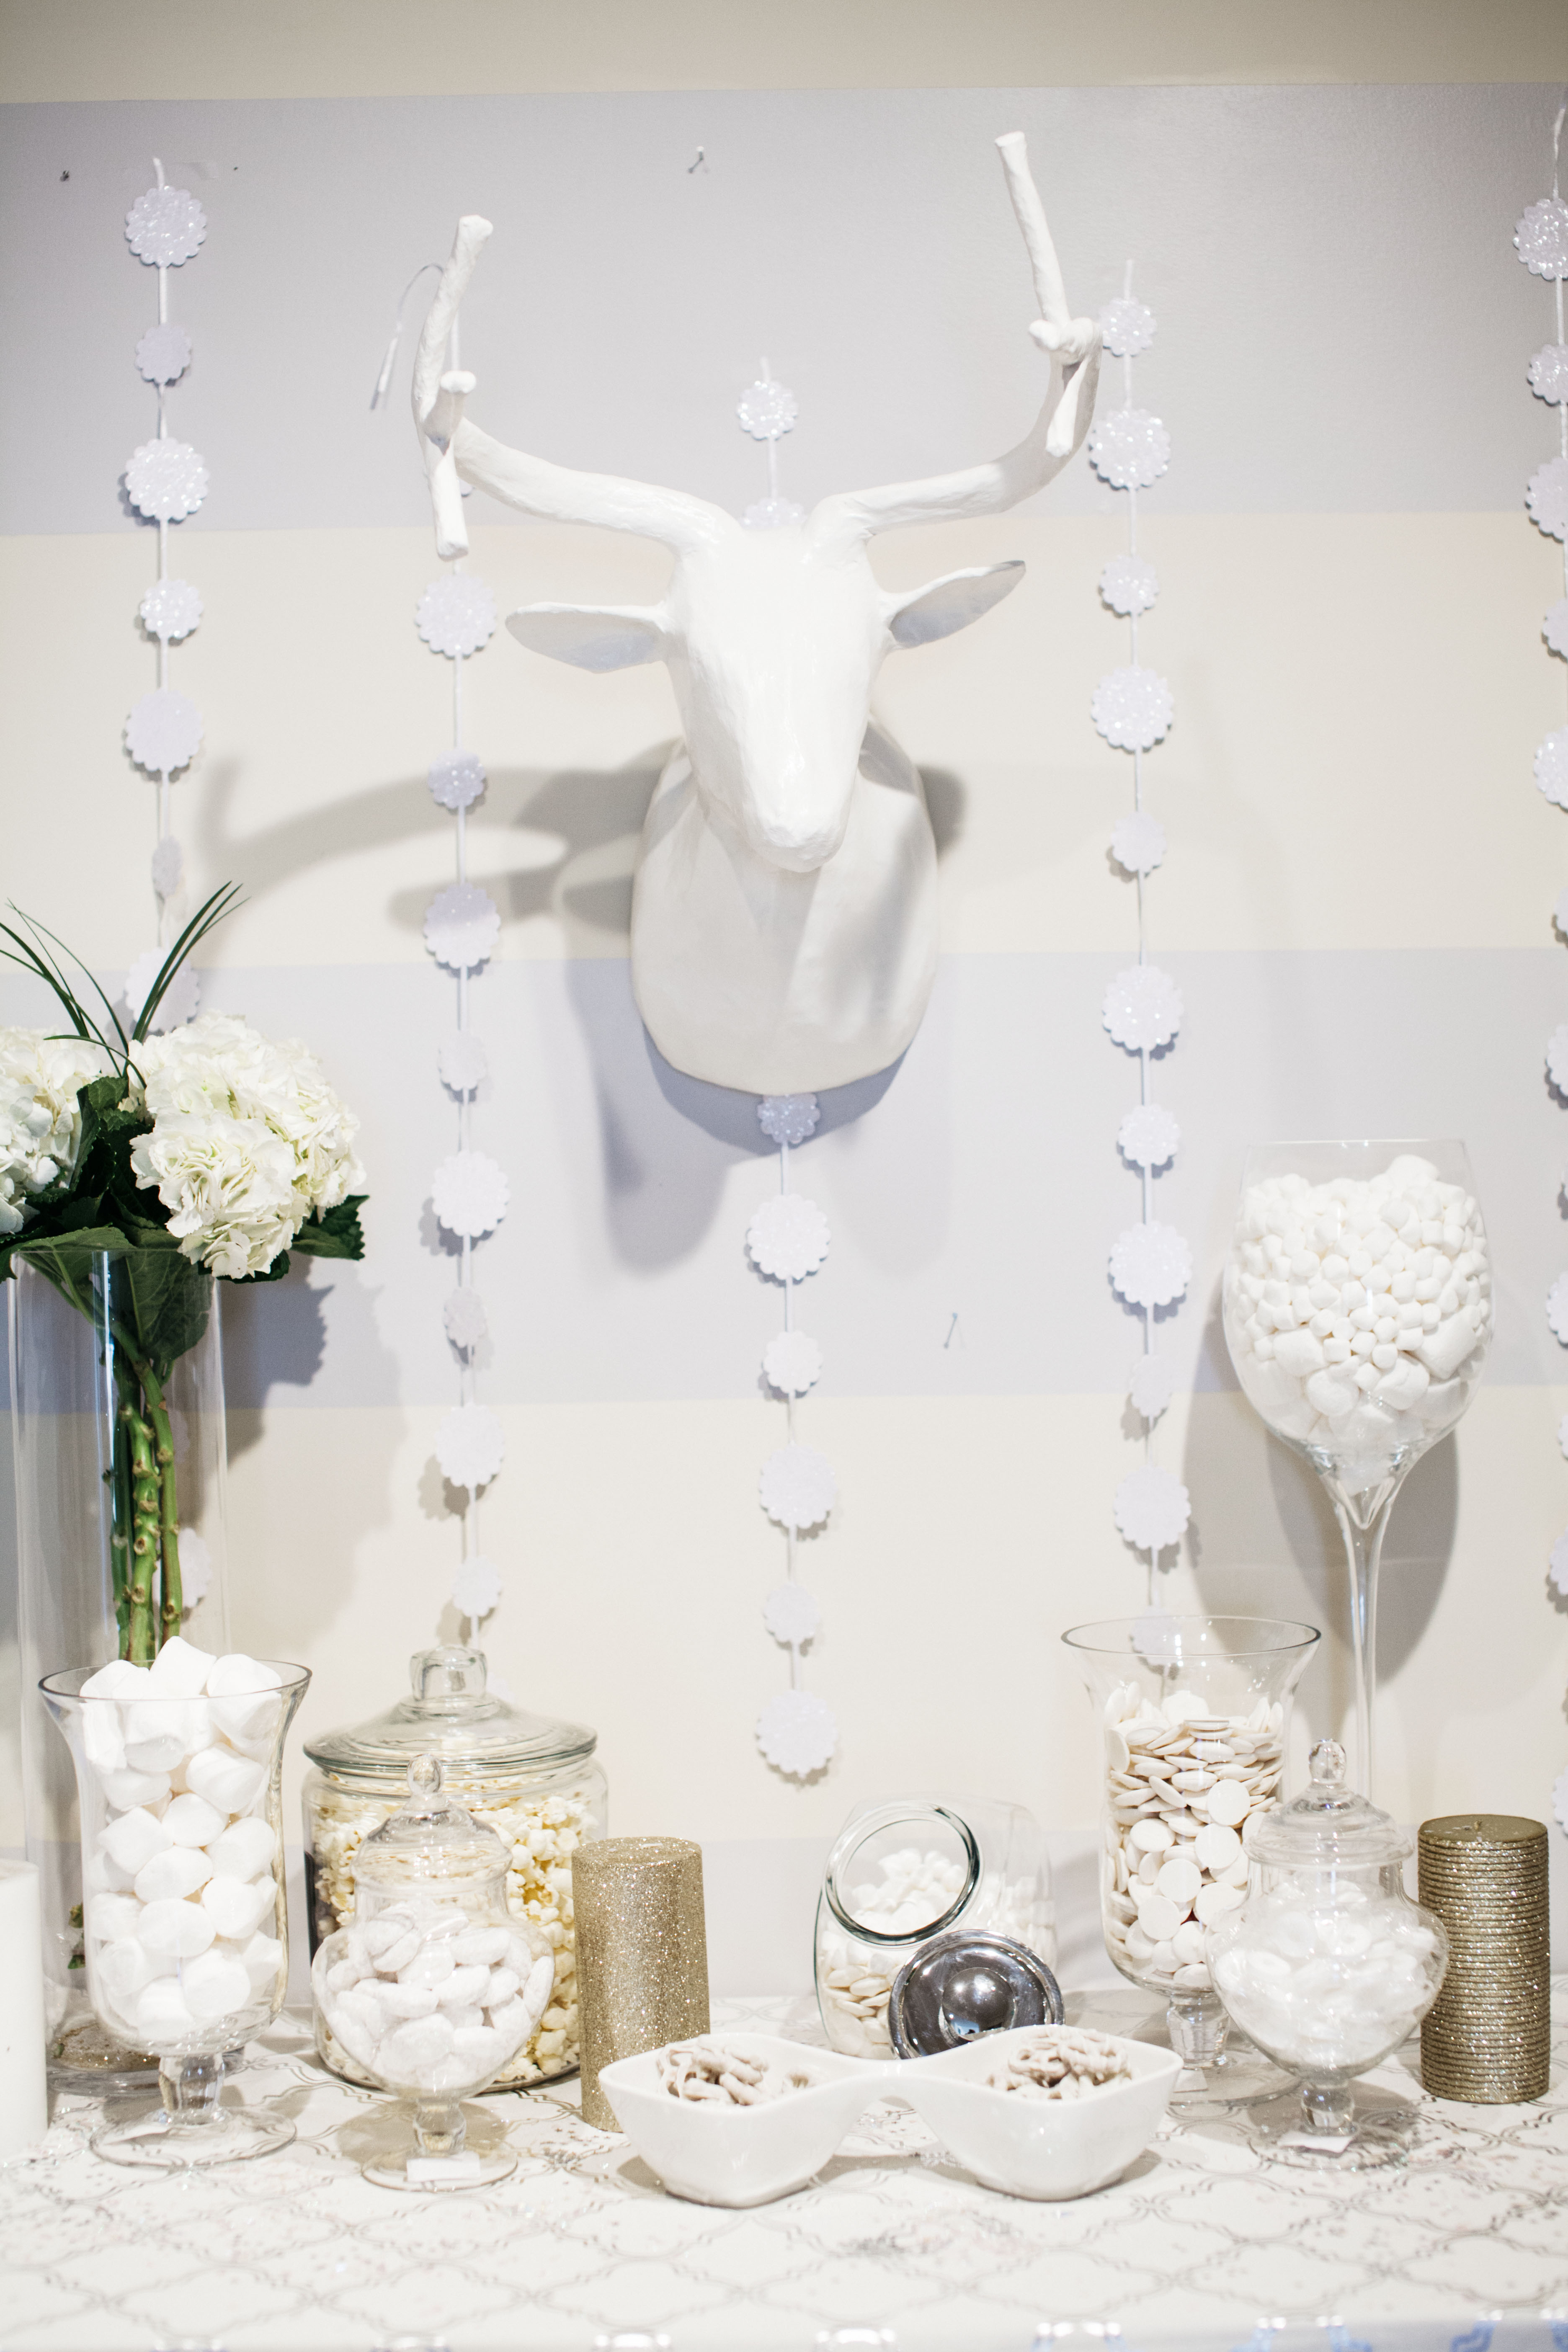 Winter White Party Decor Food A Photo Of Dyg By Ariana Clare 54